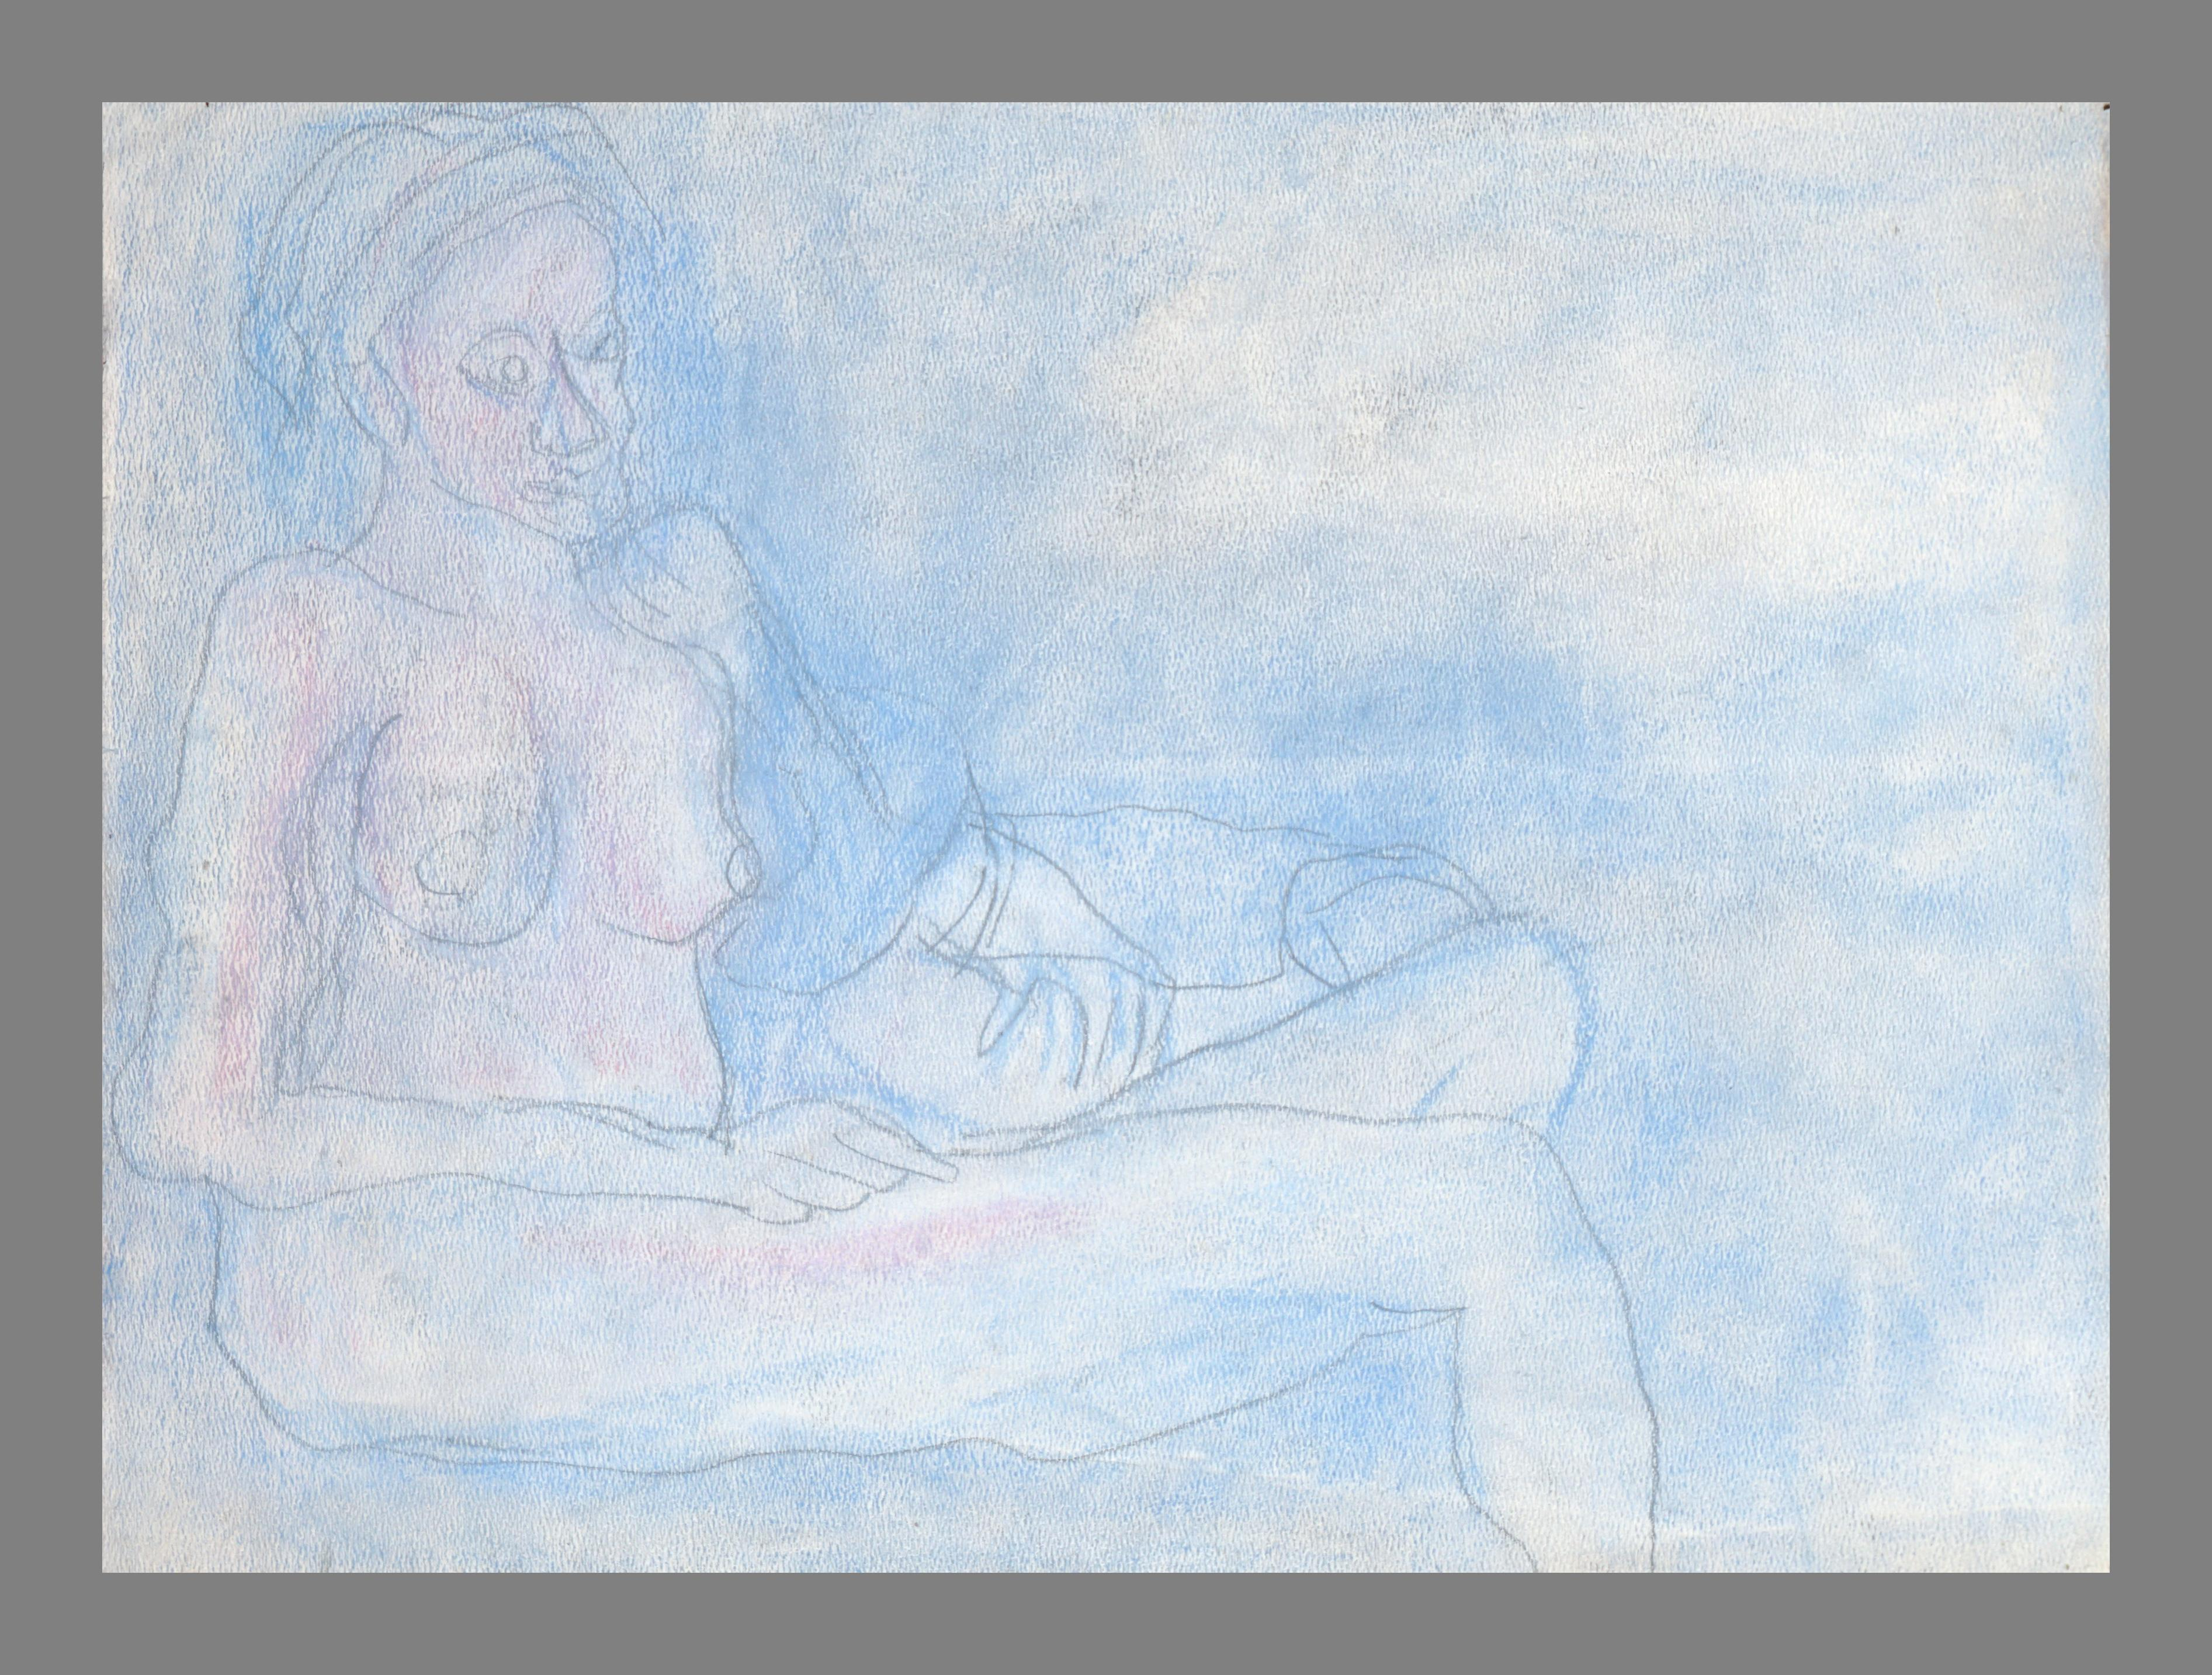 Reclining Nude - Blue Abstract Figurative